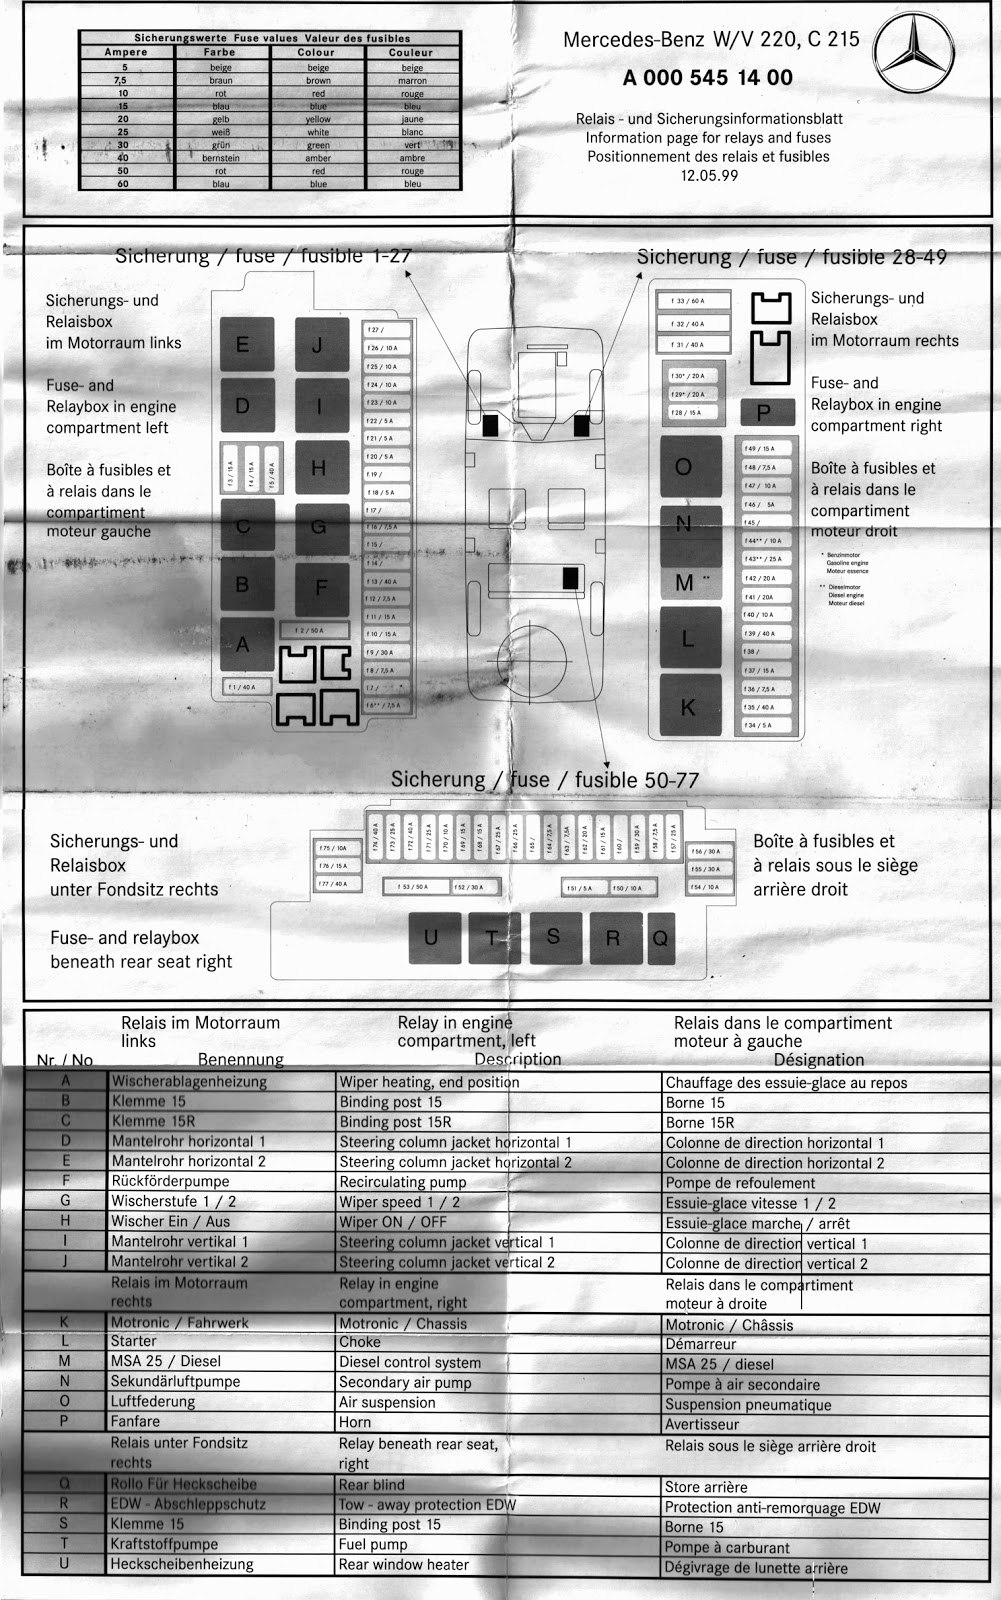 benz s430 fuse diagram wiring diagram 2001 Mercedes S500 Fuse Box Location